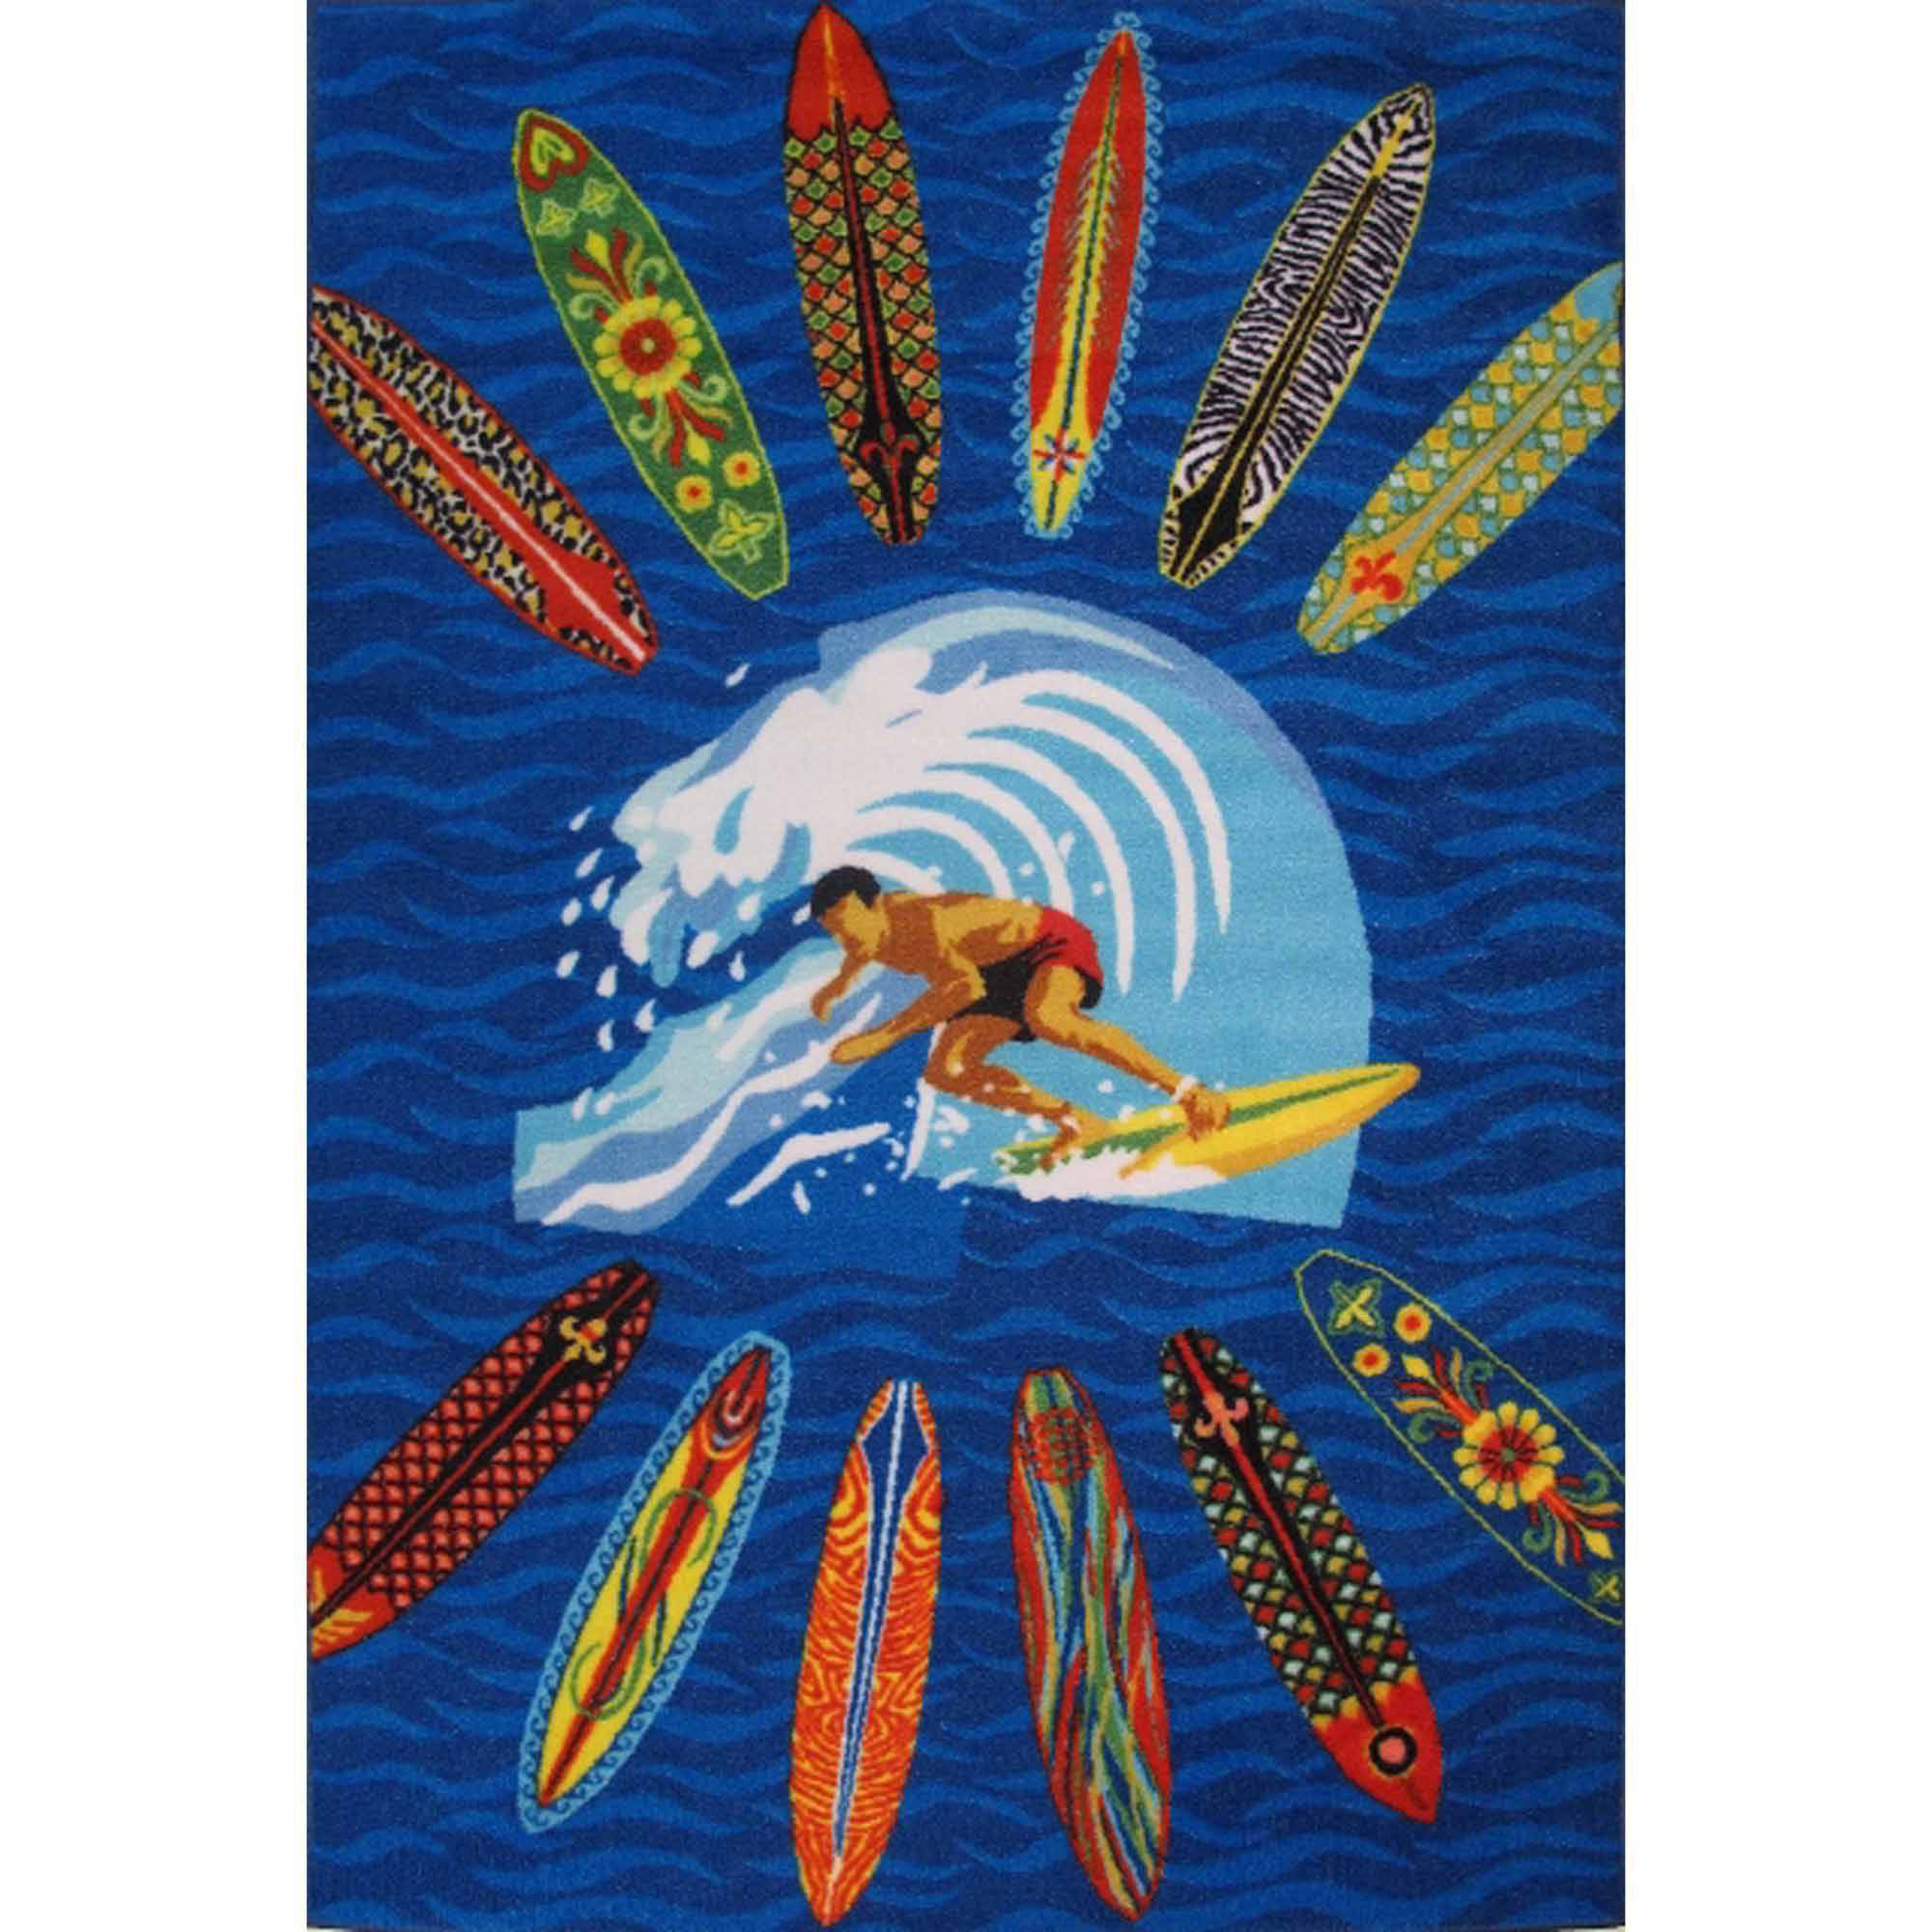 Fun Rugs Surfer Dude Kids Rugs